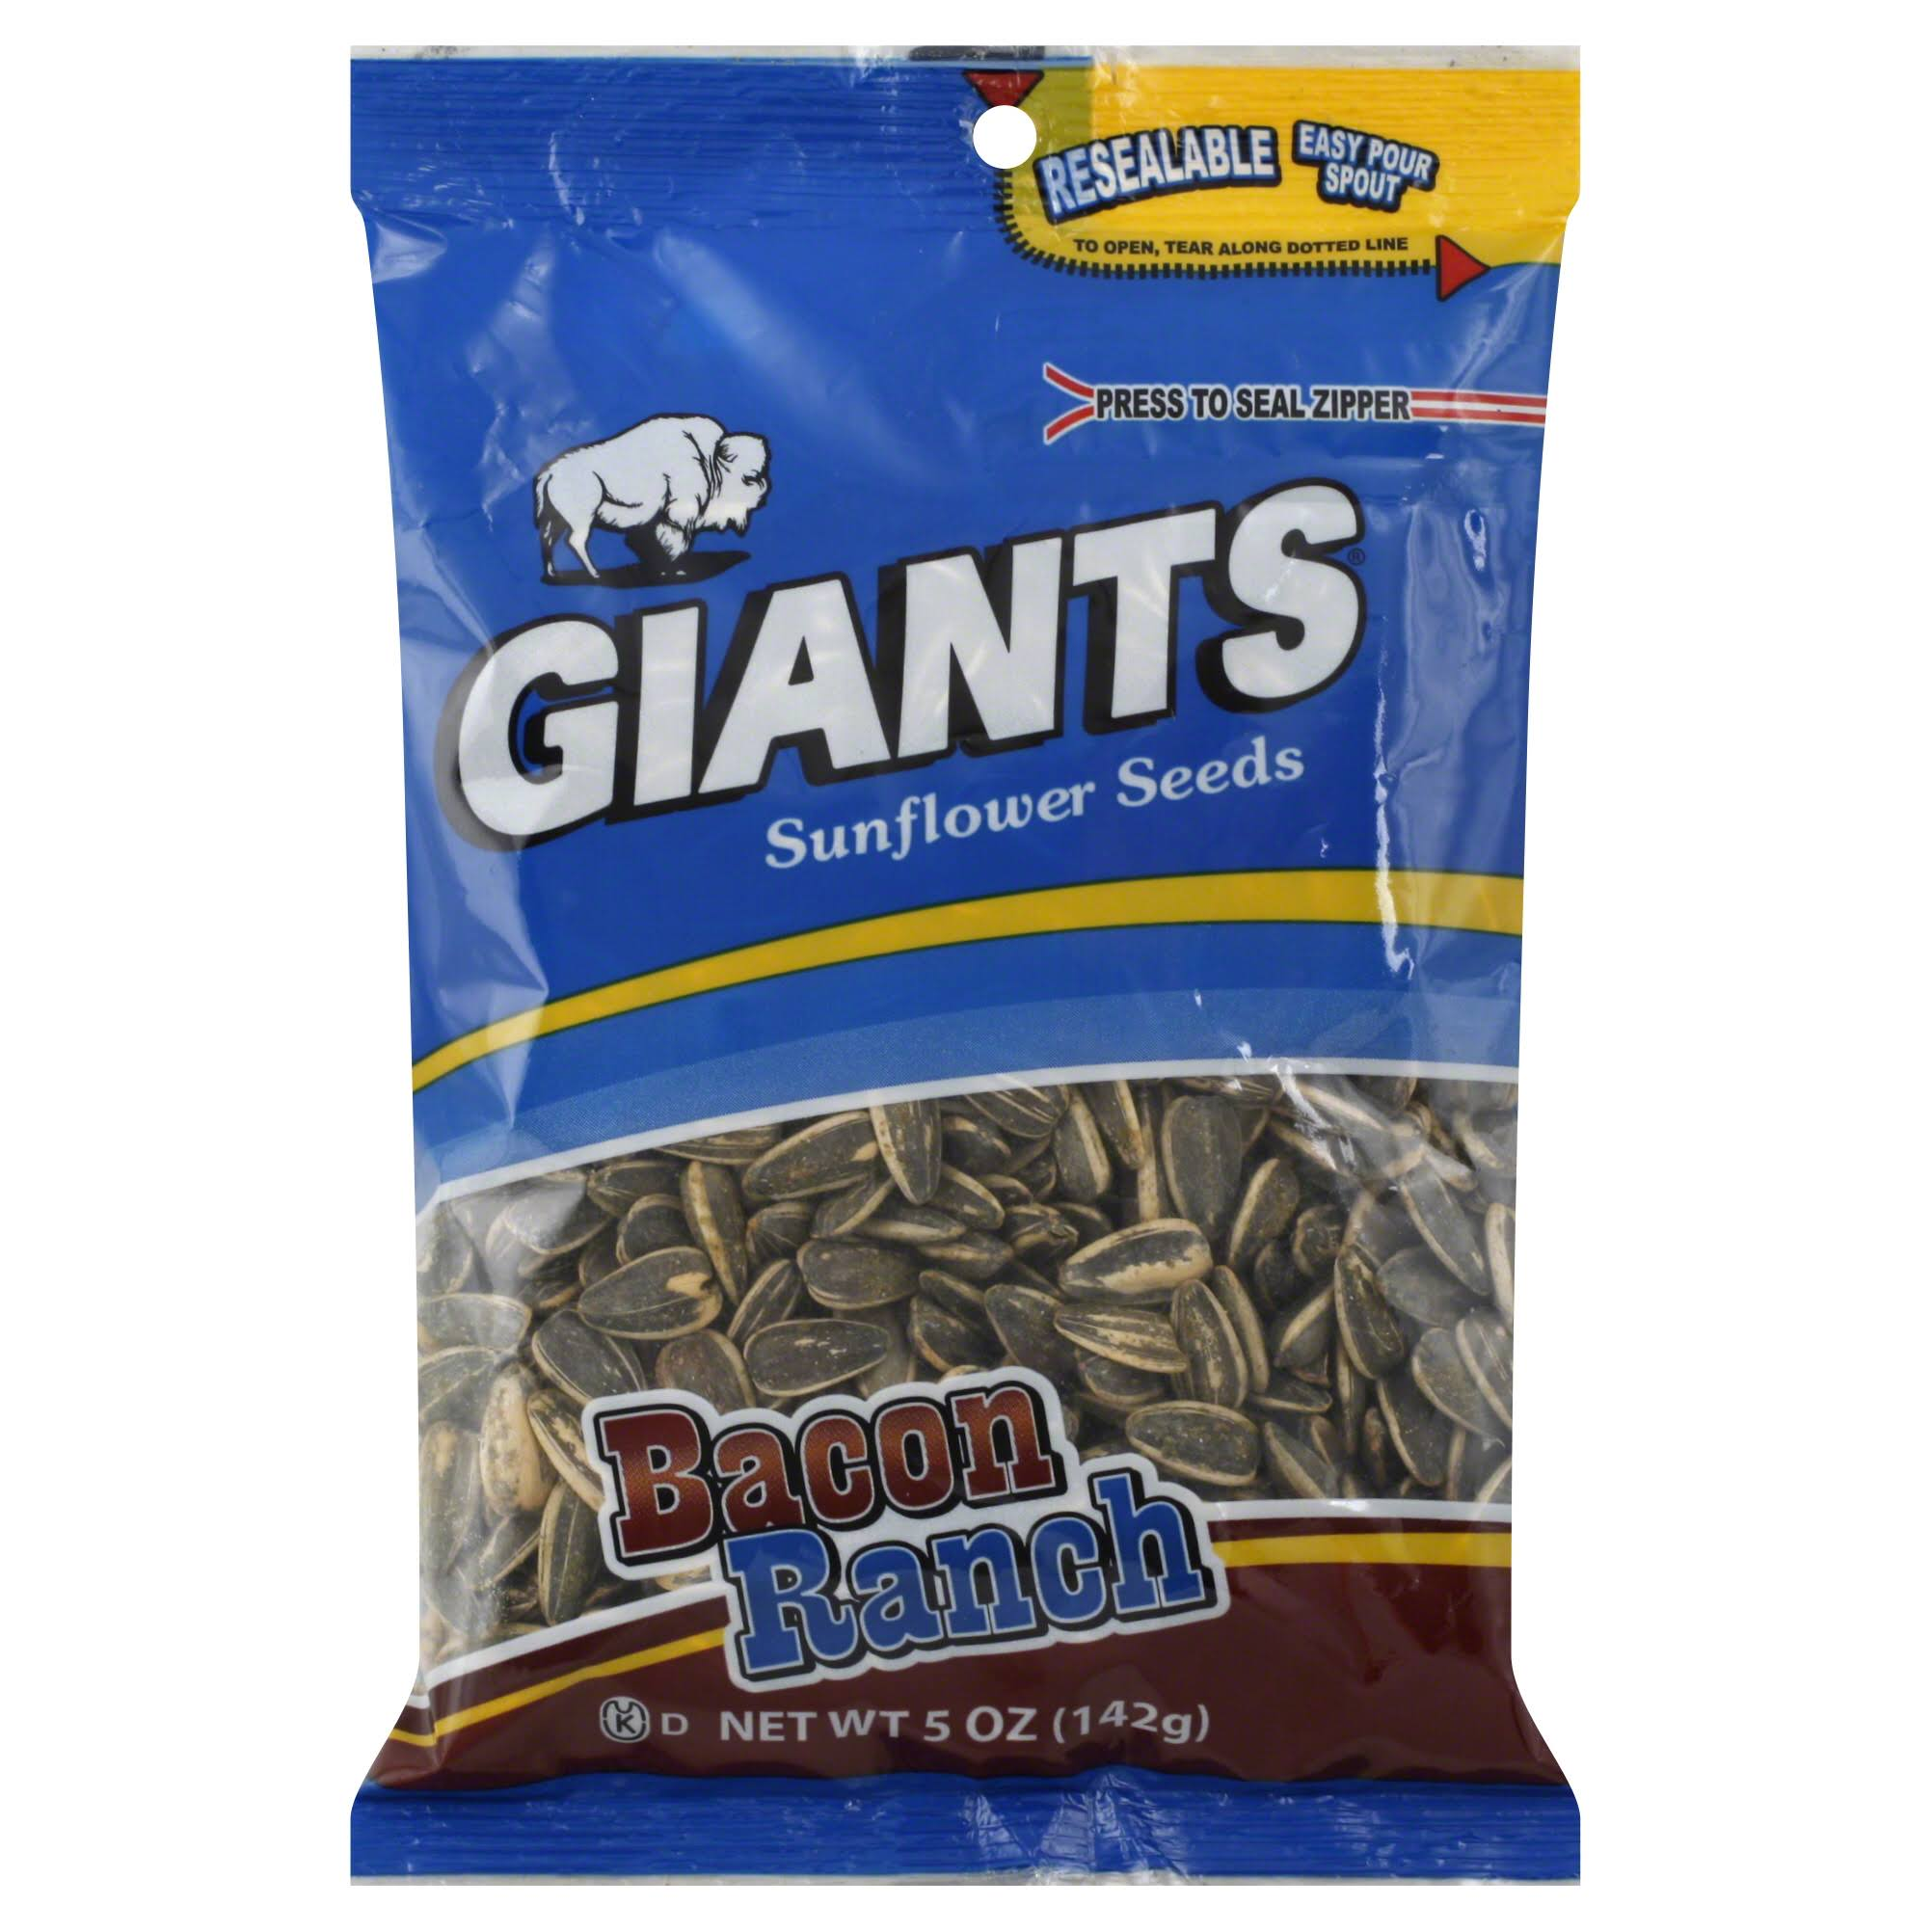 Giants Sunflower Seeds - 5oz, Bacon Ranch